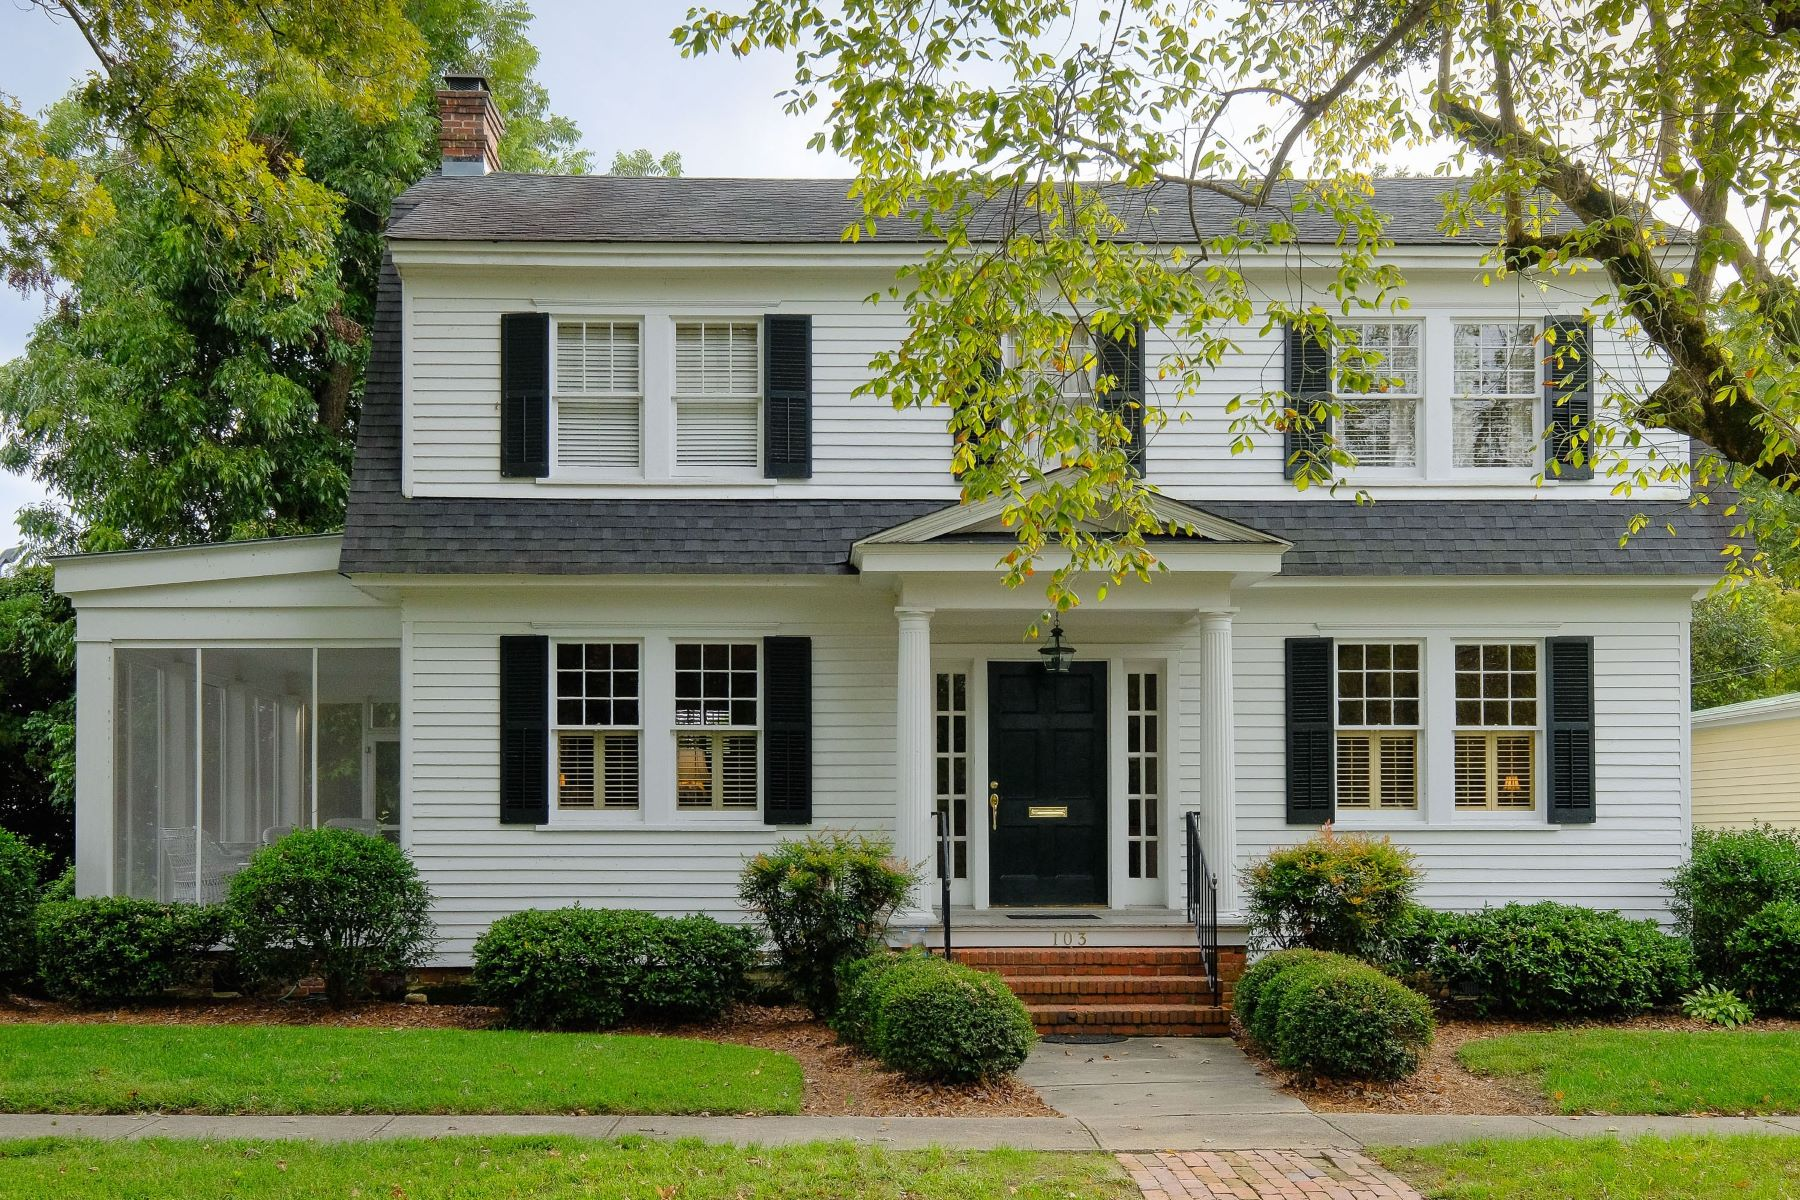 Single Family Home for Sale at Handsome Historic District 103 W Church Street Edenton, North Carolina, 27932 United States